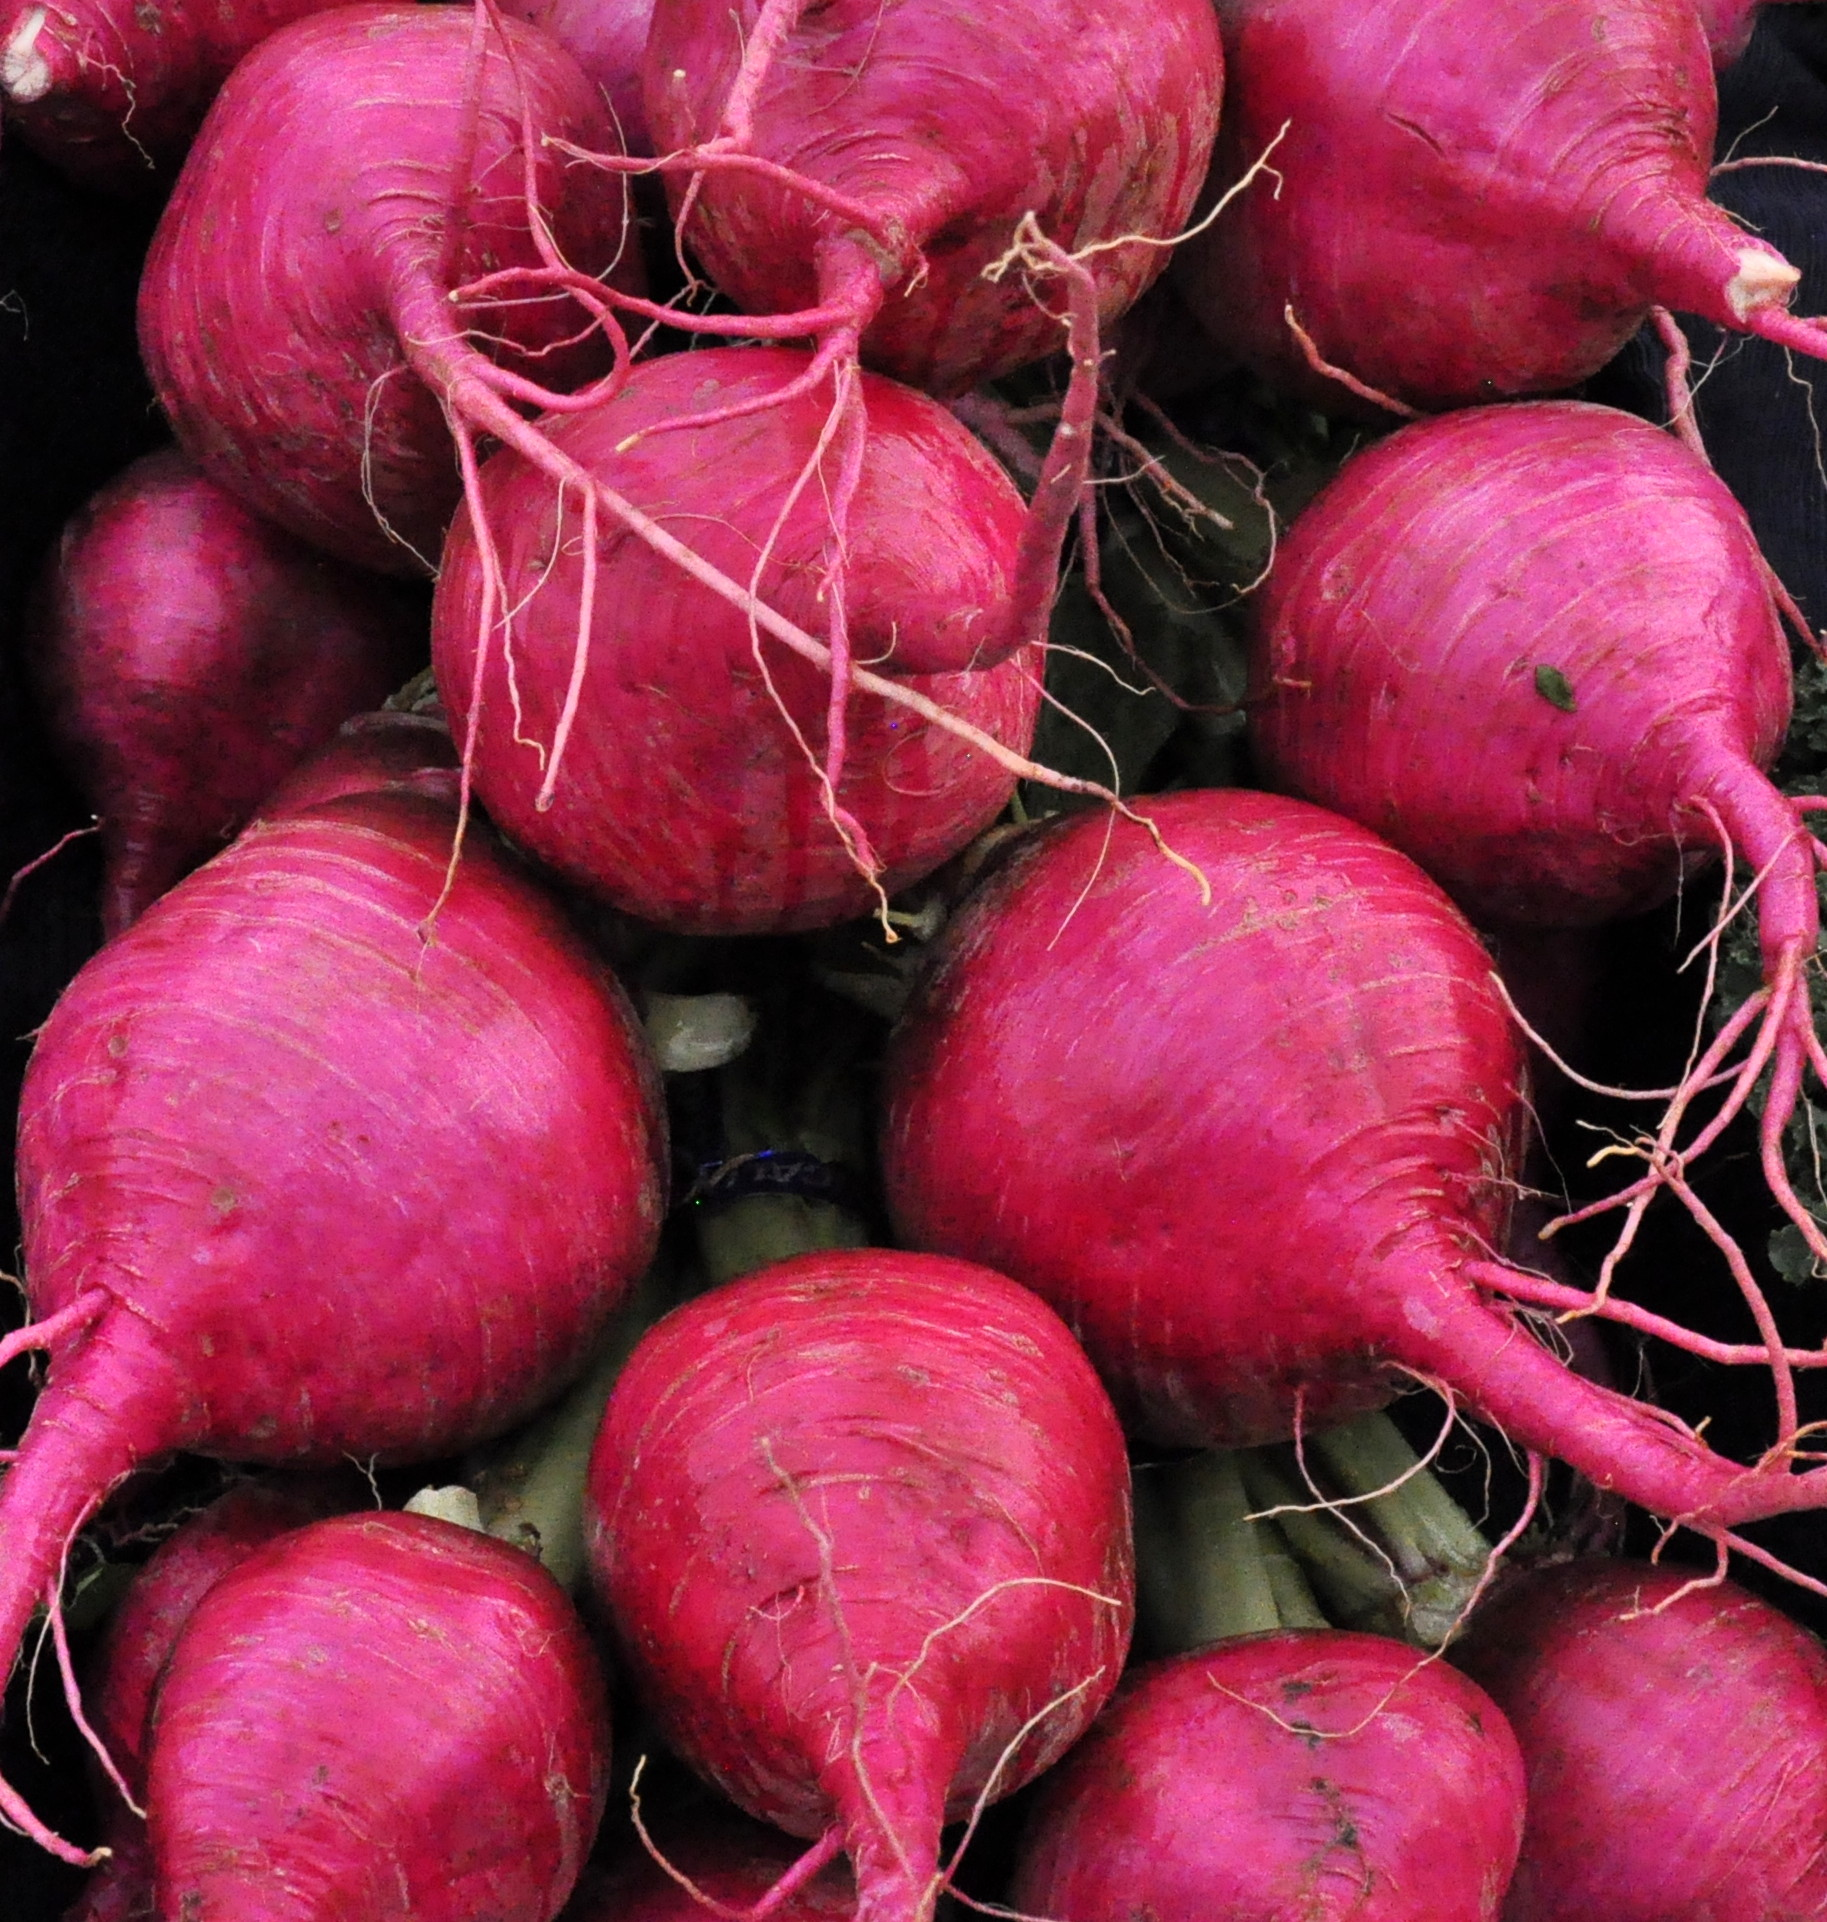 Pink turnips from Boistfort Valley Farm. Photo copyright 2014 by Zachary D. Lyons.